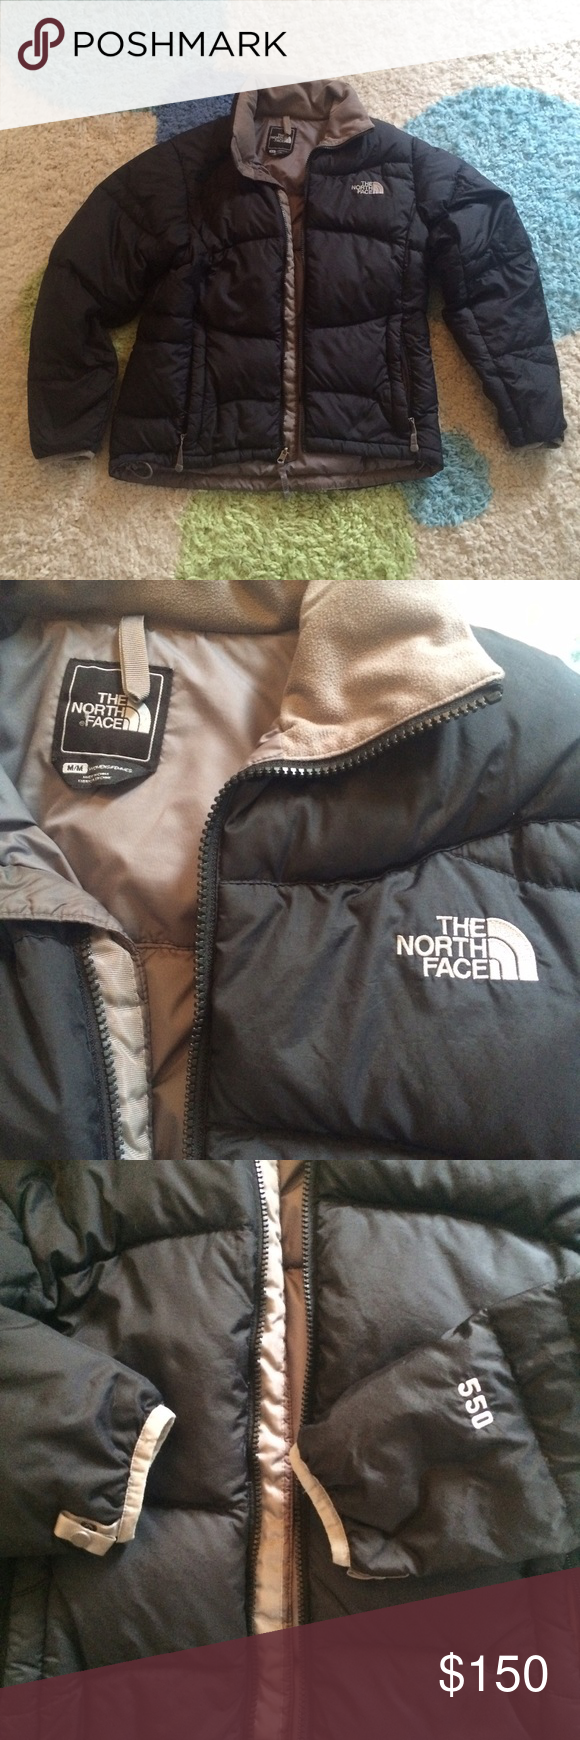 [The North Face] Black Puff Jacket Size Medium Worn some but no flaws! 550 style! Classic coat that's perfect for winter which will be here soon! Down jacket! North Face Jackets & Coats Puffers